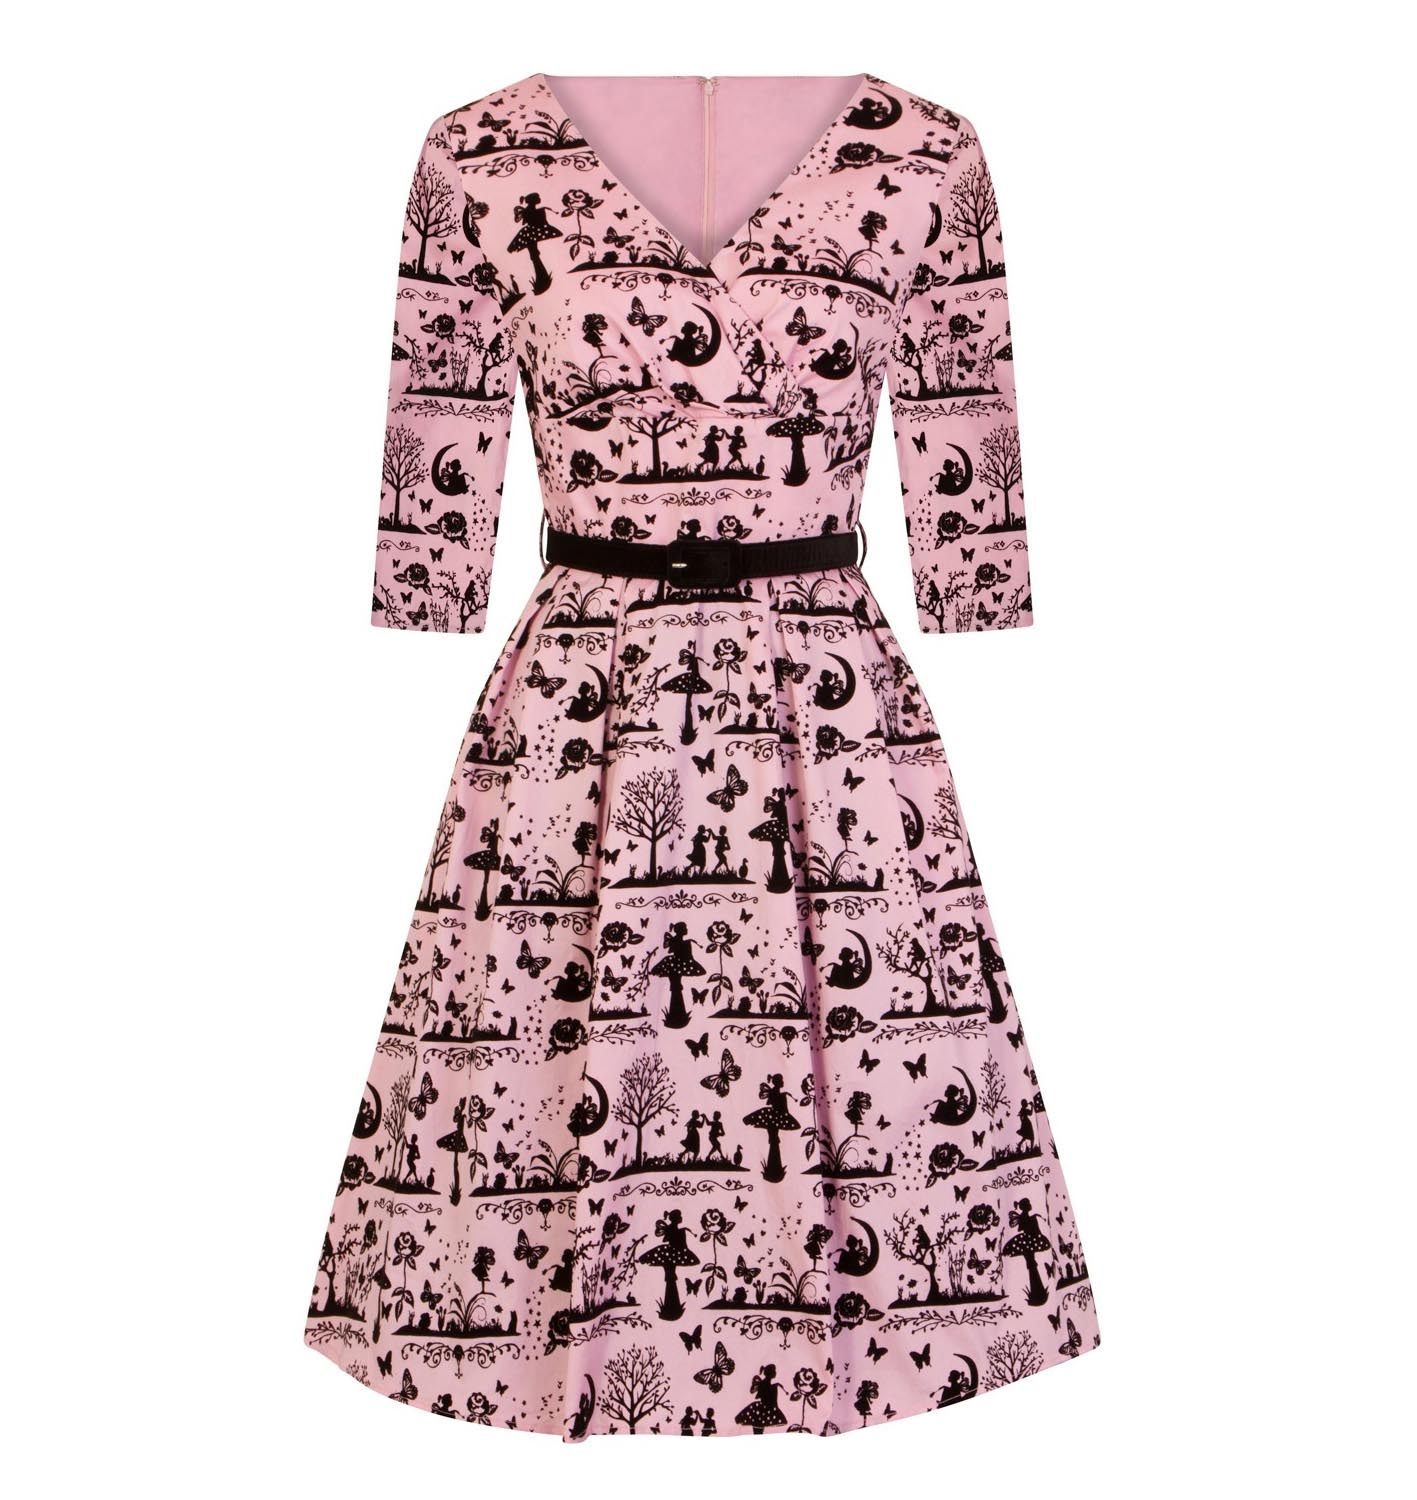 Hell-Bunny-40s-50s-Pin-Up-Dress-Fairy-Butterfly-ANDERSON-Black-Pink-All-Sizes thumbnail 11